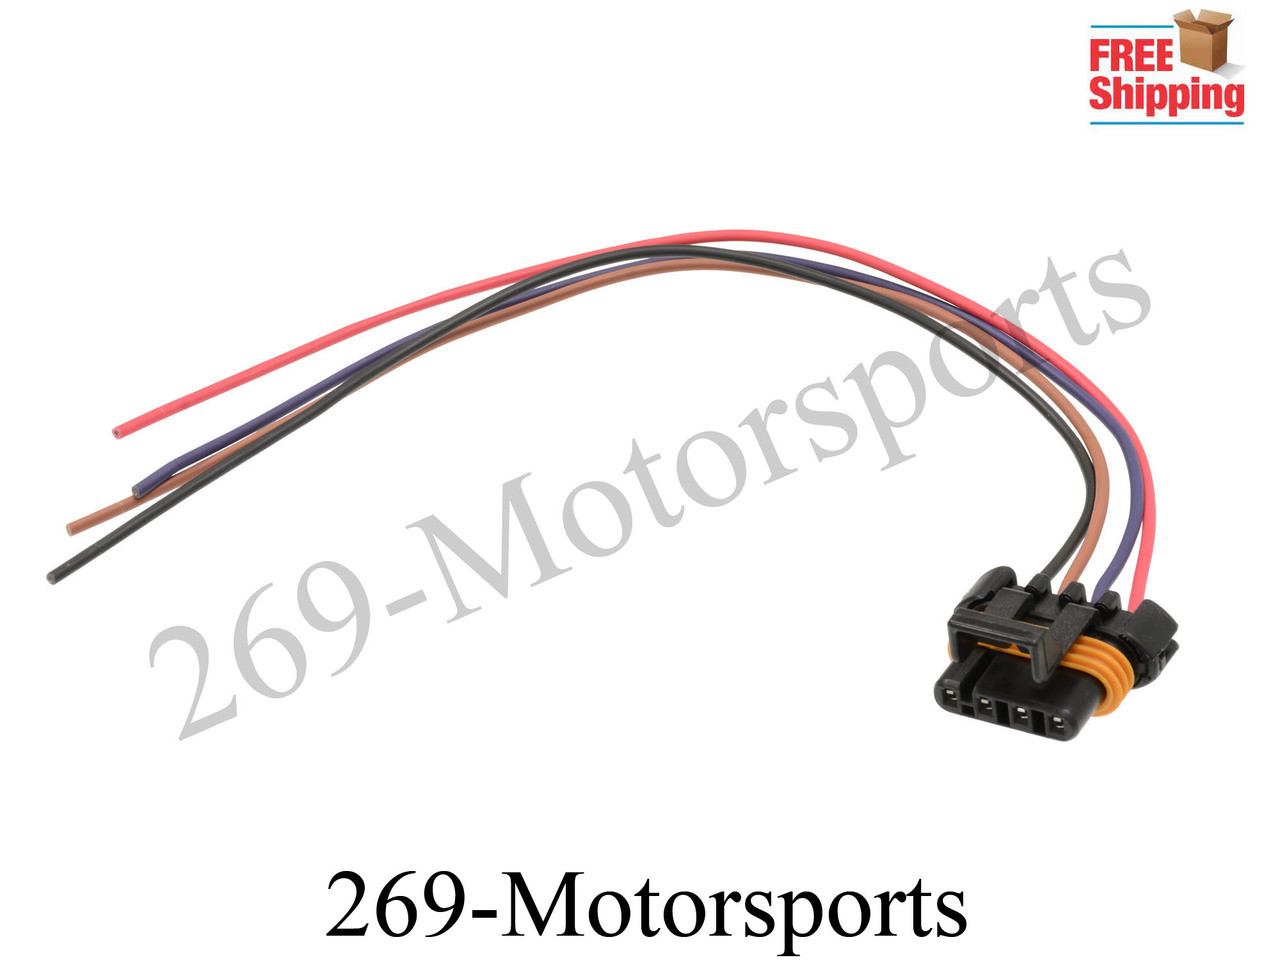 o2 oxygen sensor wiring harness connector pigtail for gm camaro firebird ls1 lt1 [ 1280 x 960 Pixel ]